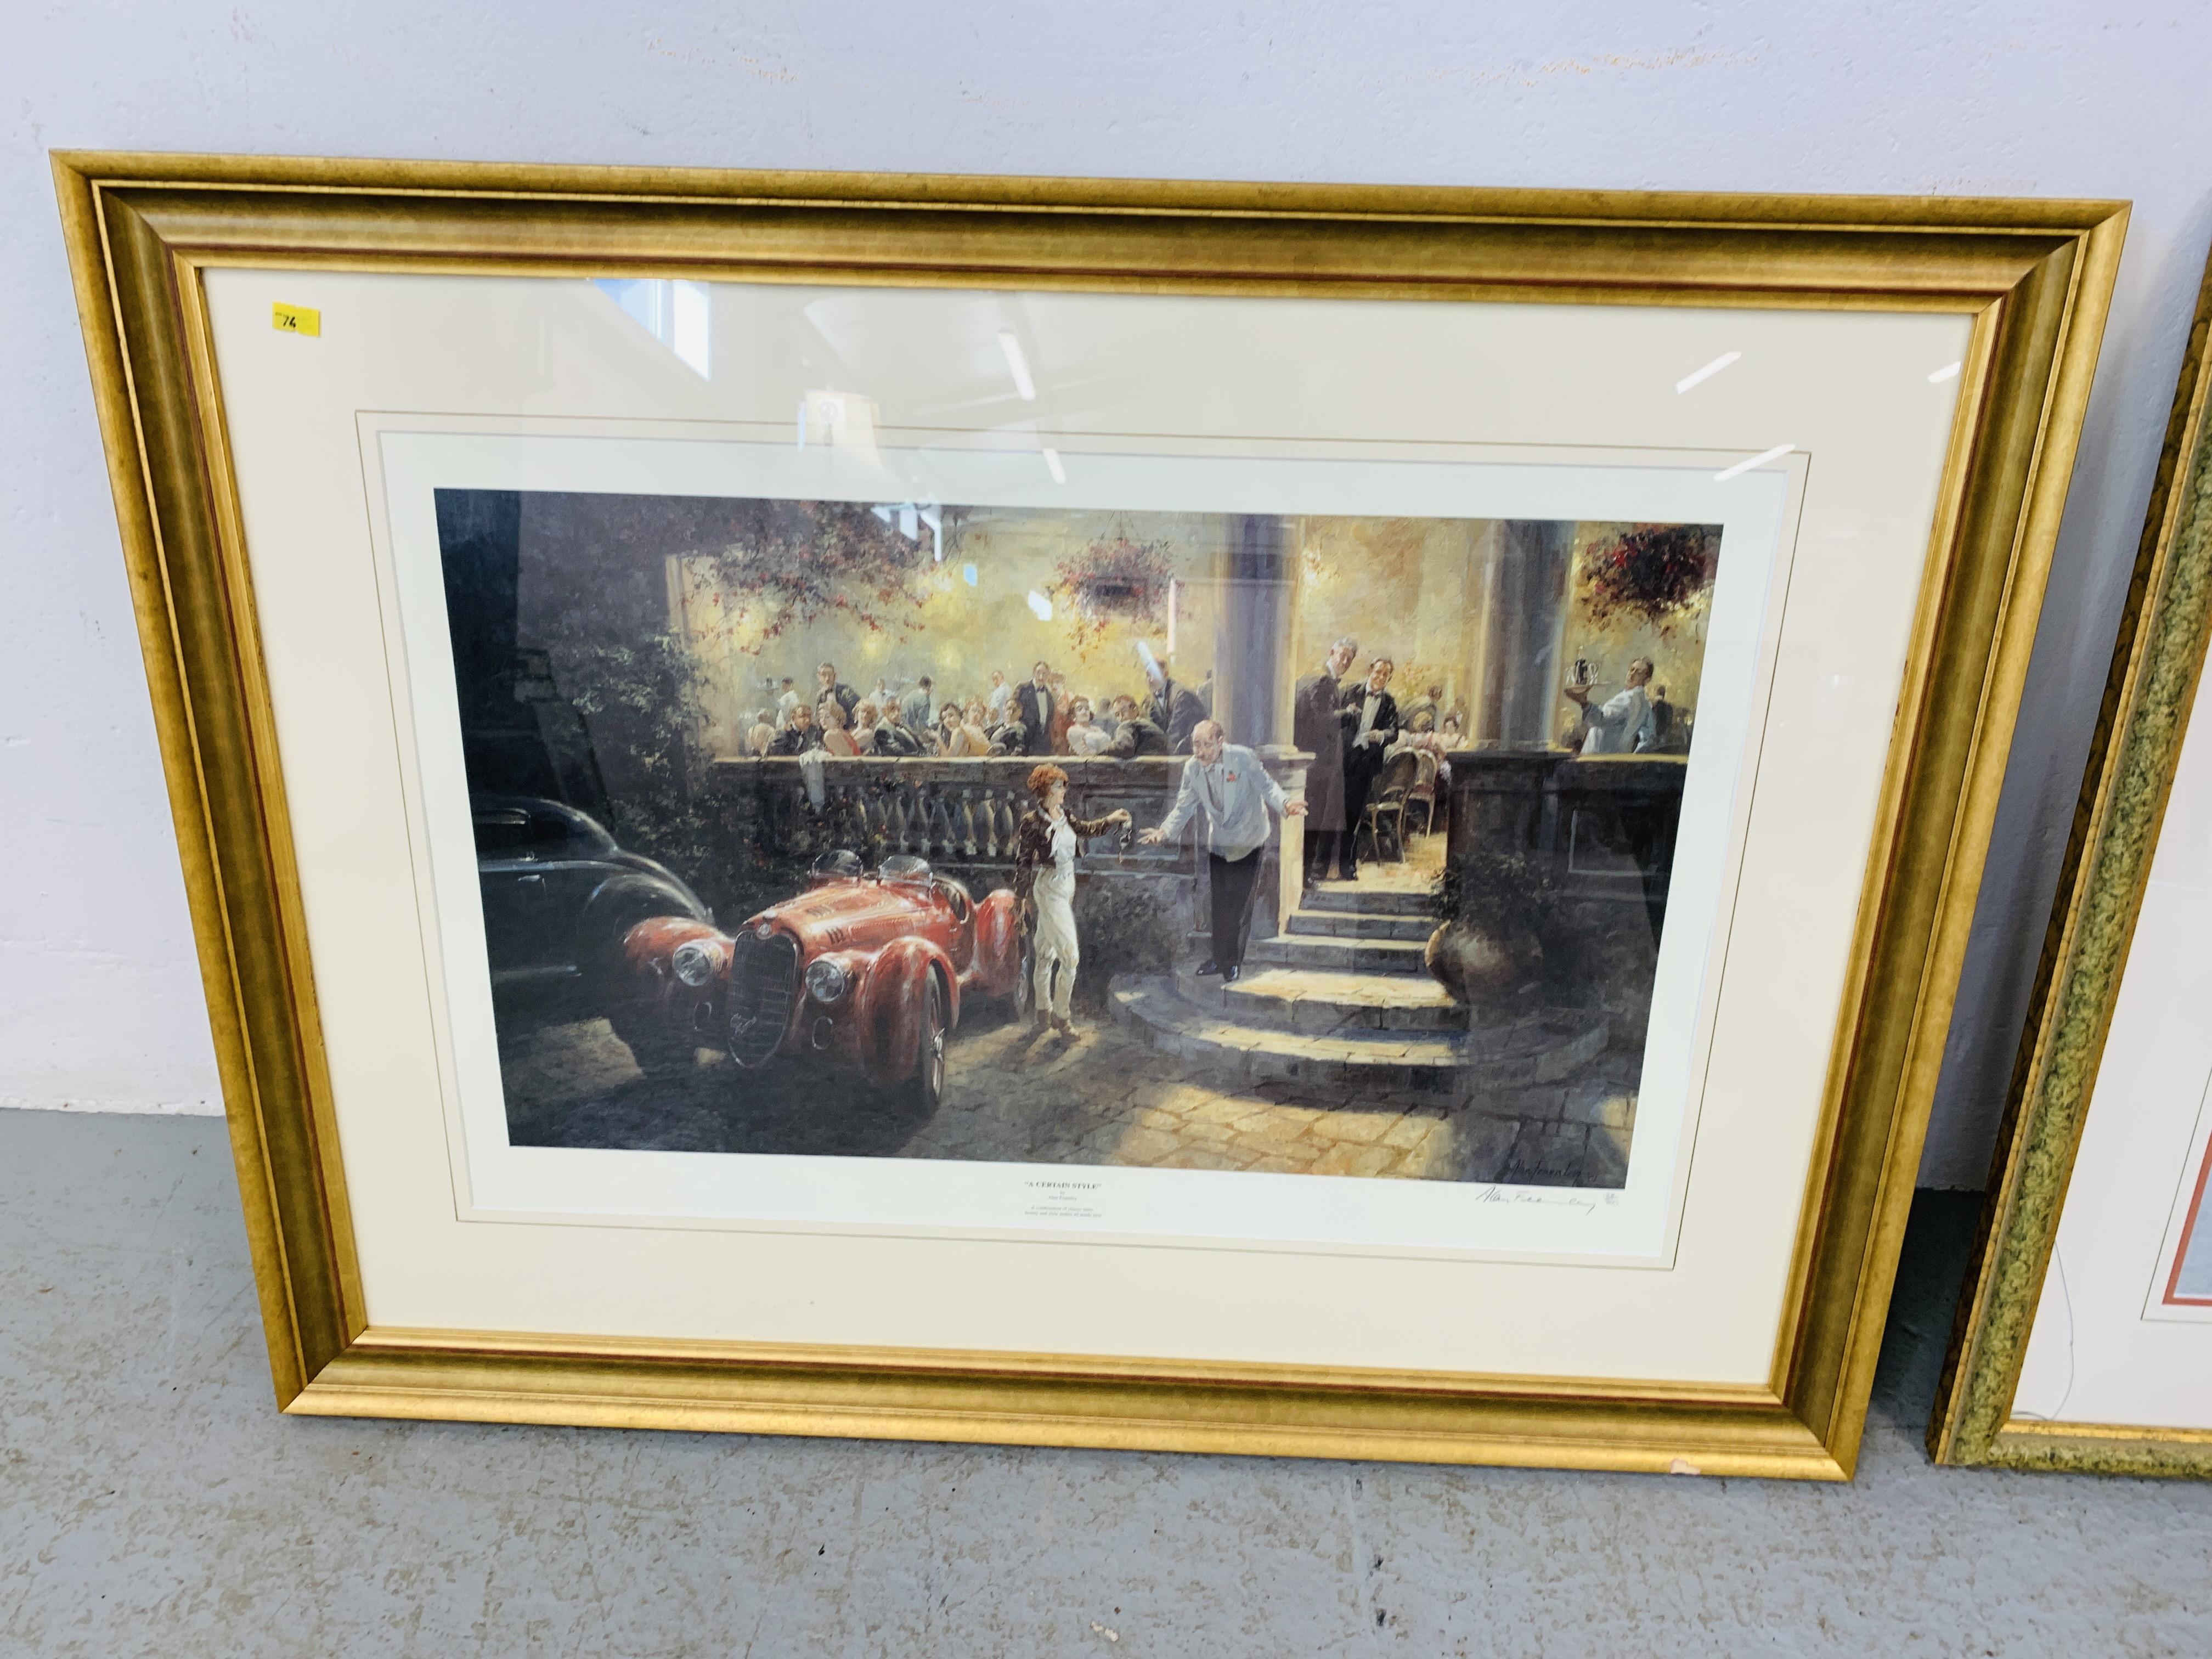 """A FRAMED AND MOUNTED ALAN FEARNLEY LTD EDITION PRINT """"A CERTAIN STYLE"""" 128/300 35. - Image 4 of 5"""